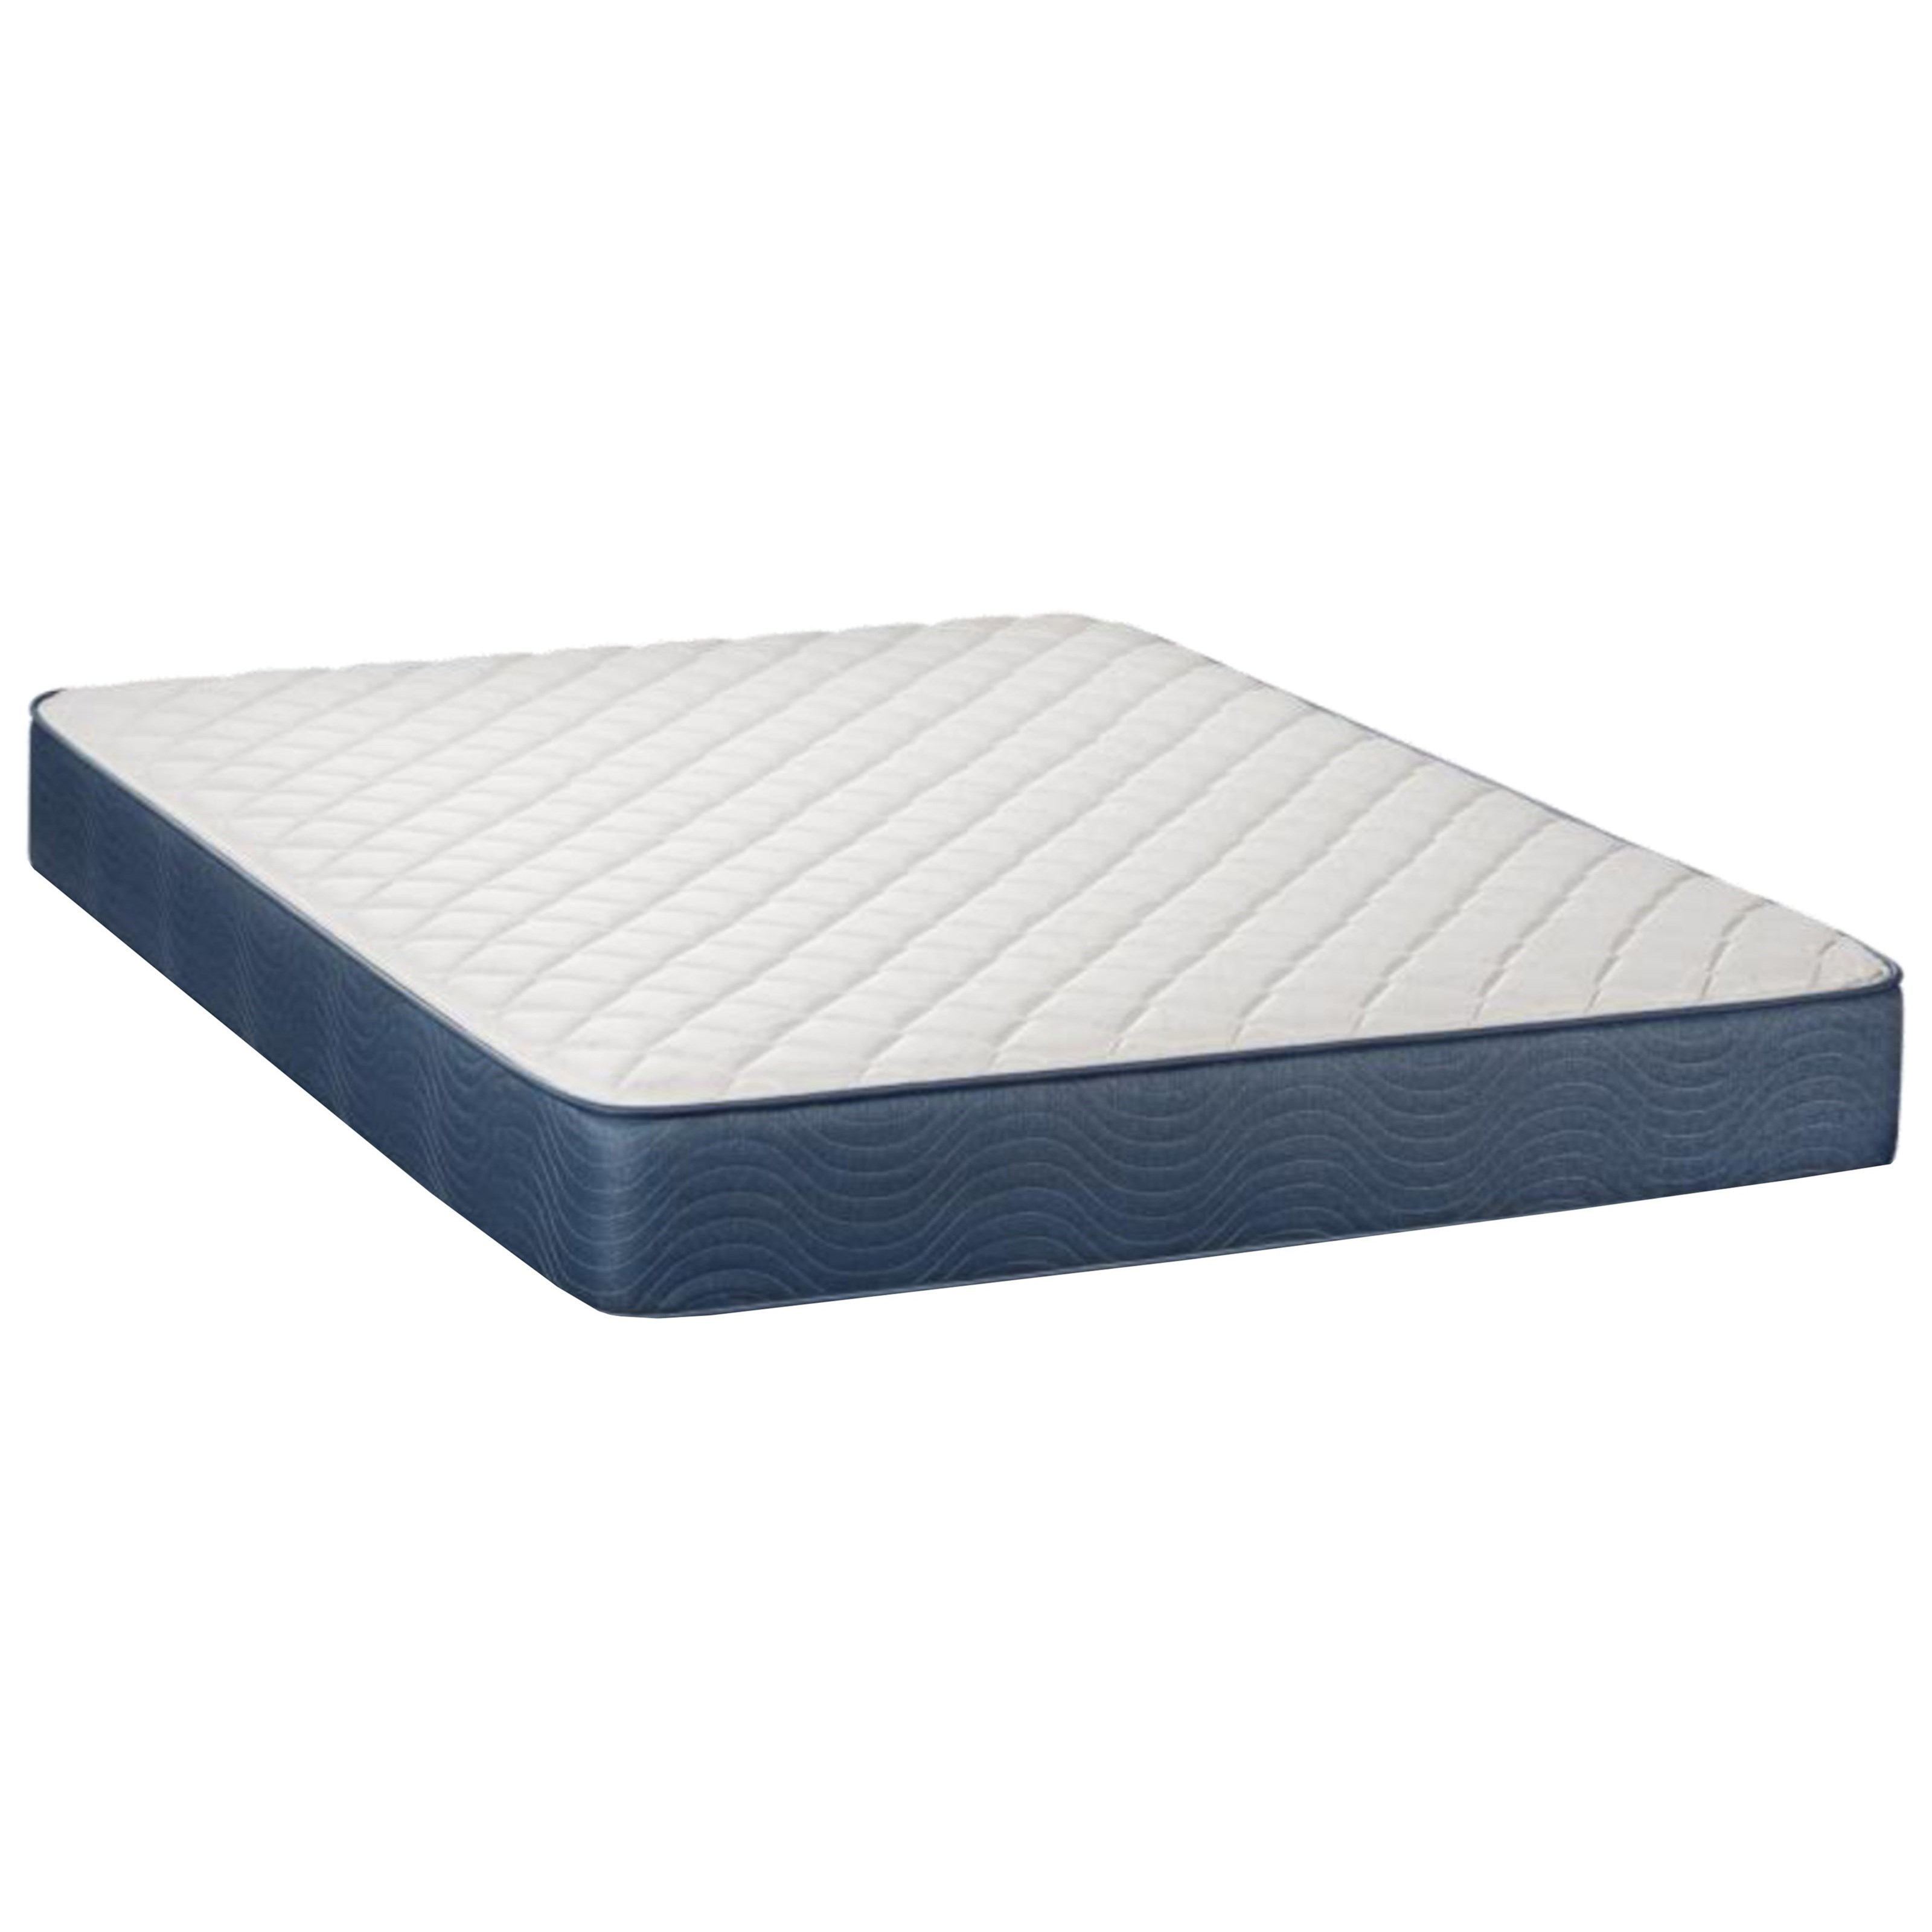 Wellington Firm Queen Firm 2-Sided Mattress by Restonic at H.L. Stephens